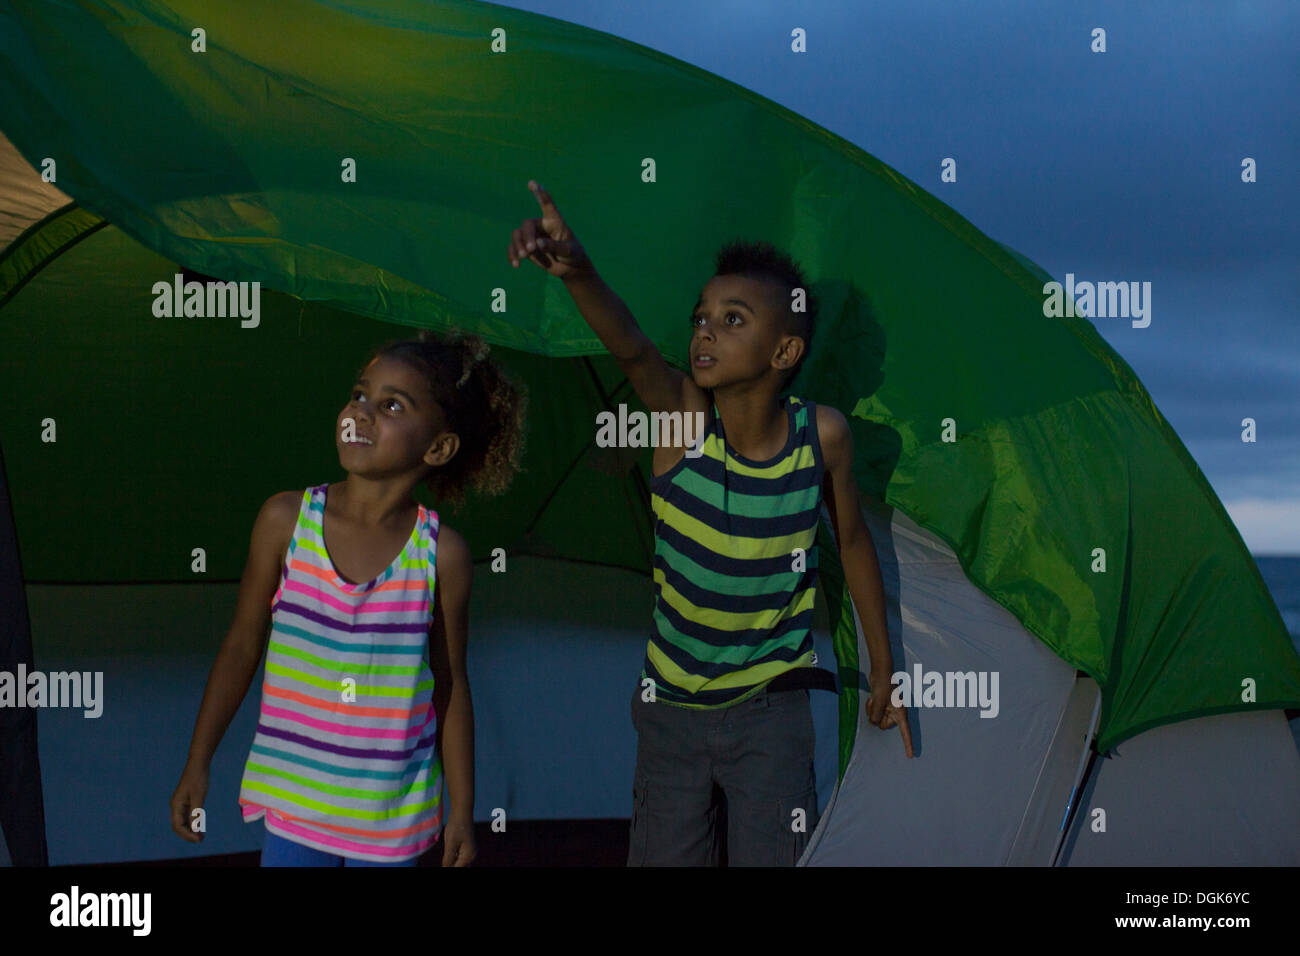 Brother and sister in tent, boy pointing - Stock Image